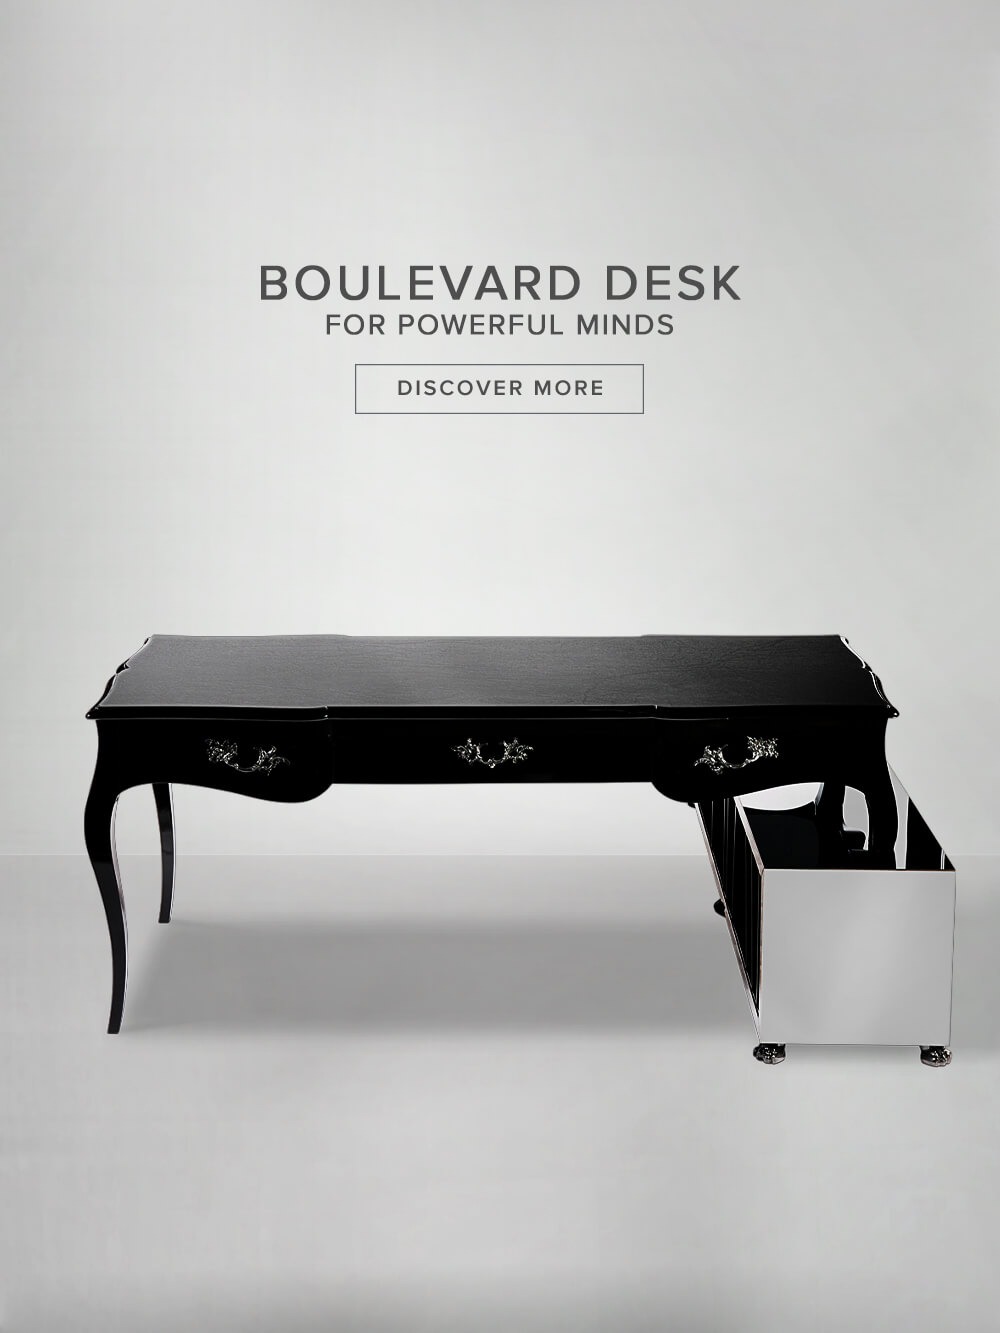 Boulevard Desk - For Powerful Minds - Discover More